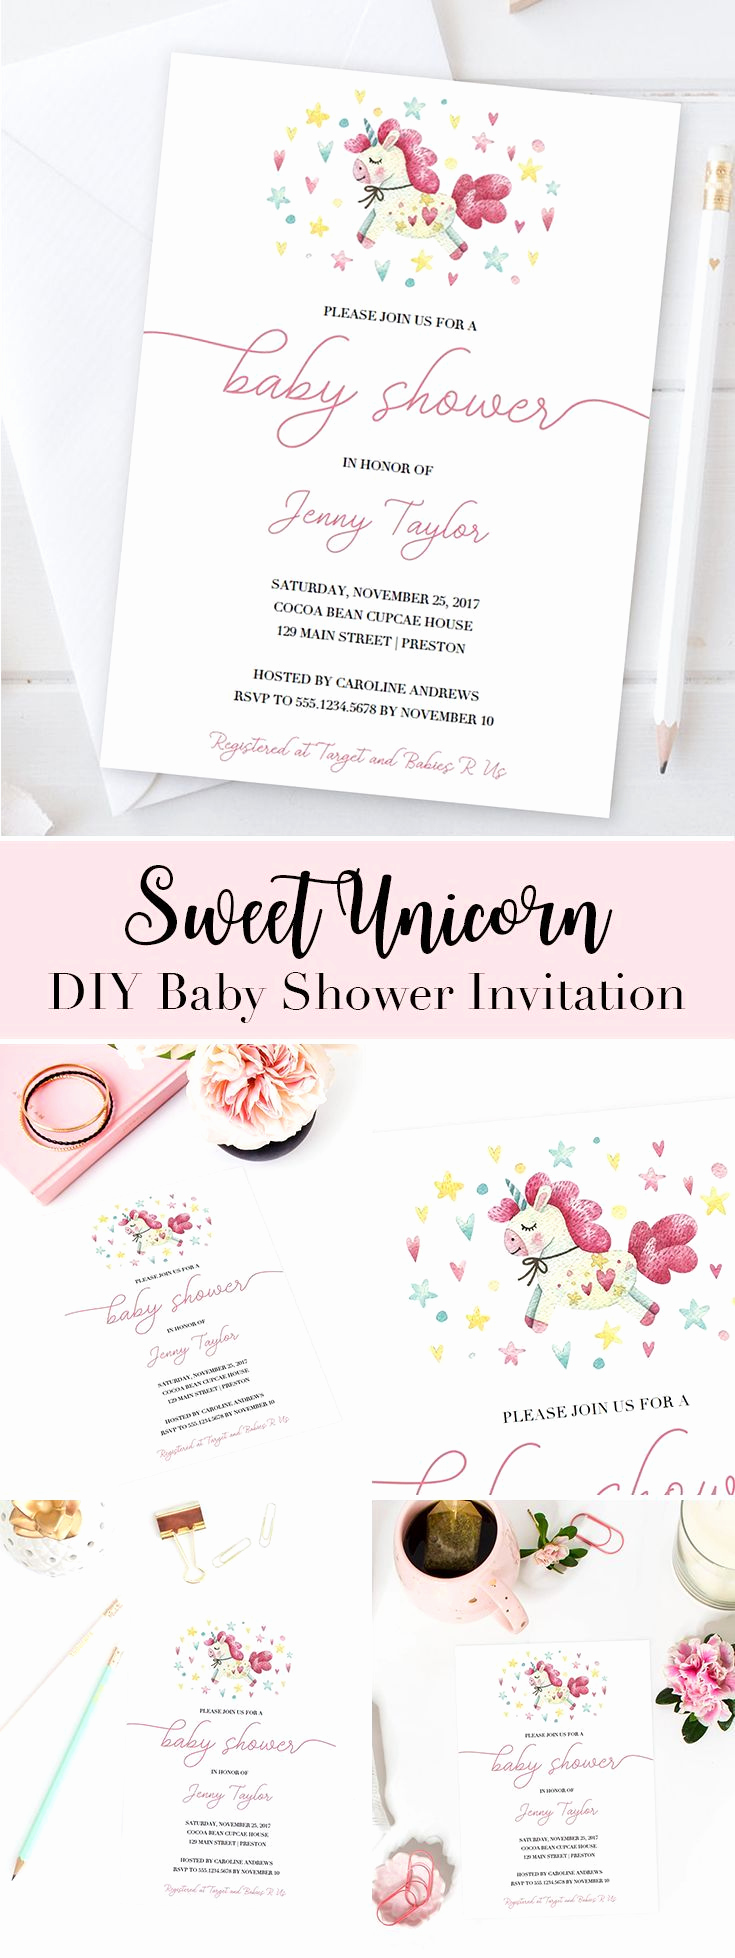 Baby Shower Invitation Templates Lovely the 25 Best Baby Shower Invitation Templates Ideas On